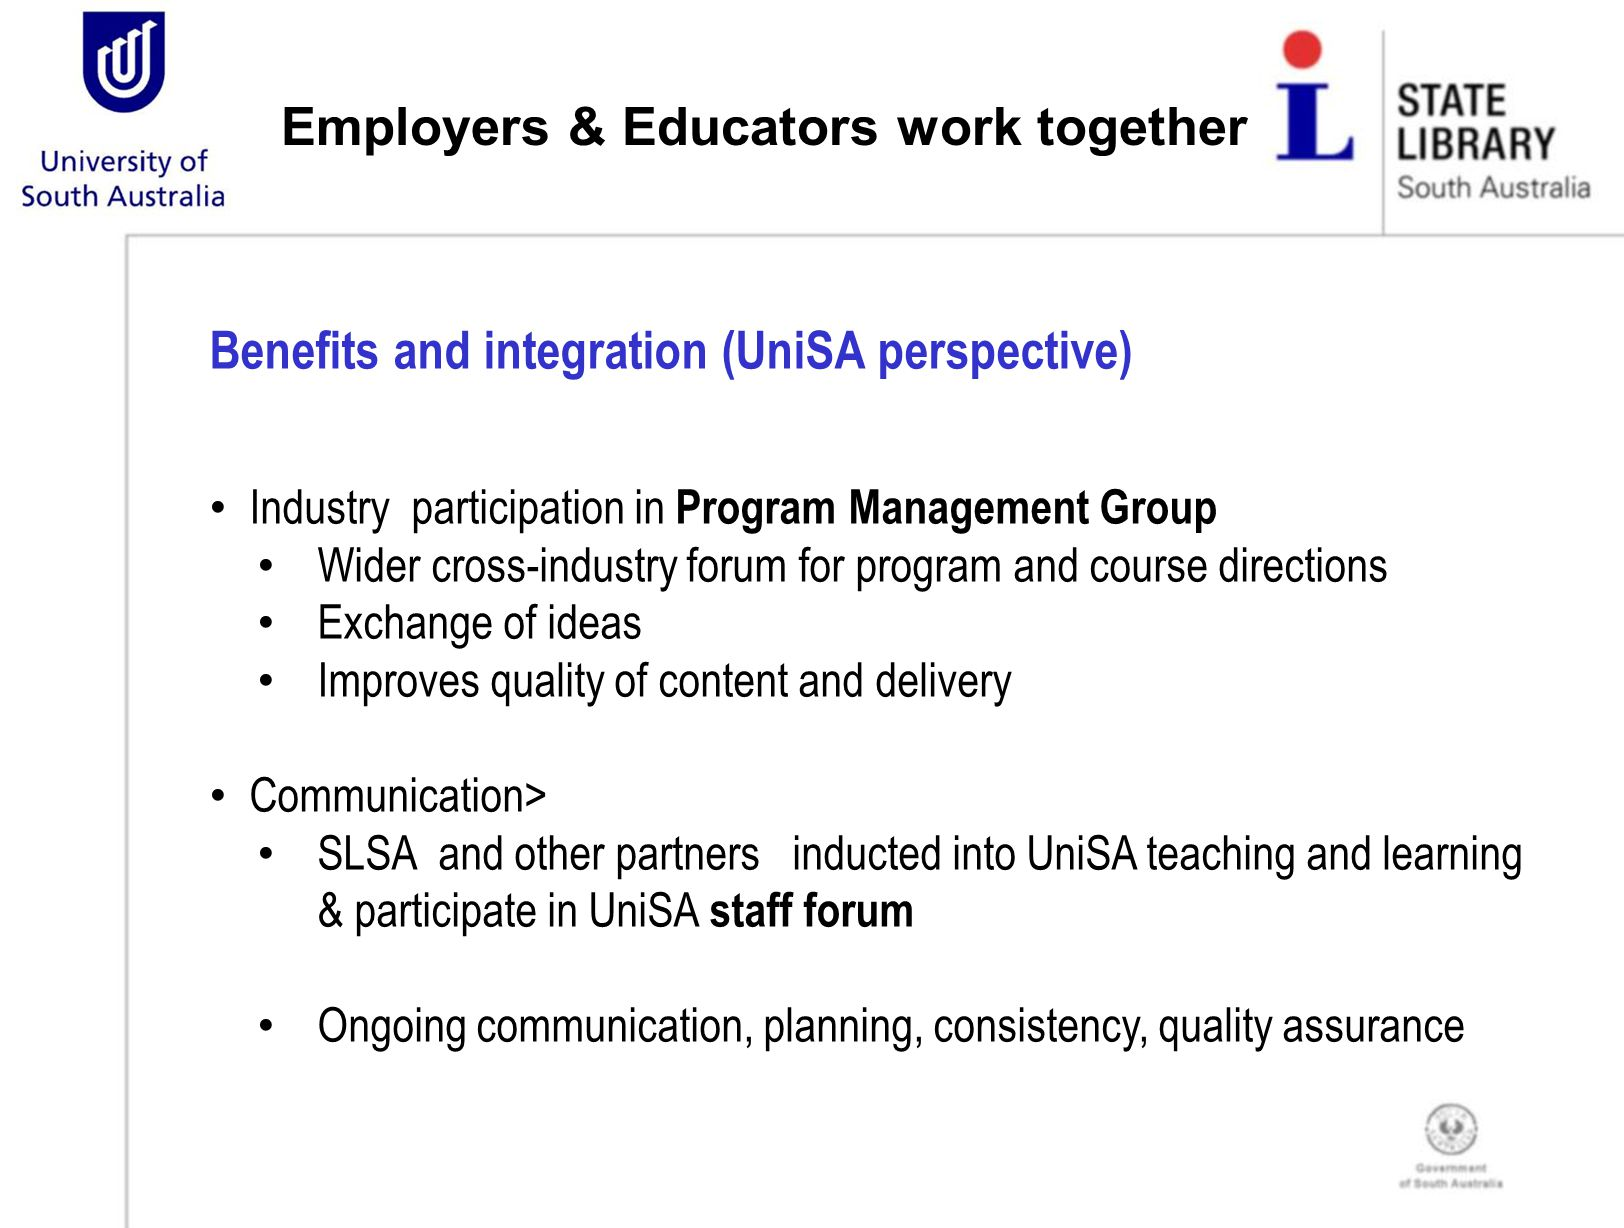 Employers & Educators work together Benefits and integration (UniSA perspective) Industry participation in Program Management Group Wider cross-industry forum for program and course directions Exchange of ideas Improves quality of content and delivery Communication> SLSA and other partners inducted into UniSA teaching and learning & participate in UniSA staff forum Ongoing communication, planning, consistency, quality assurance